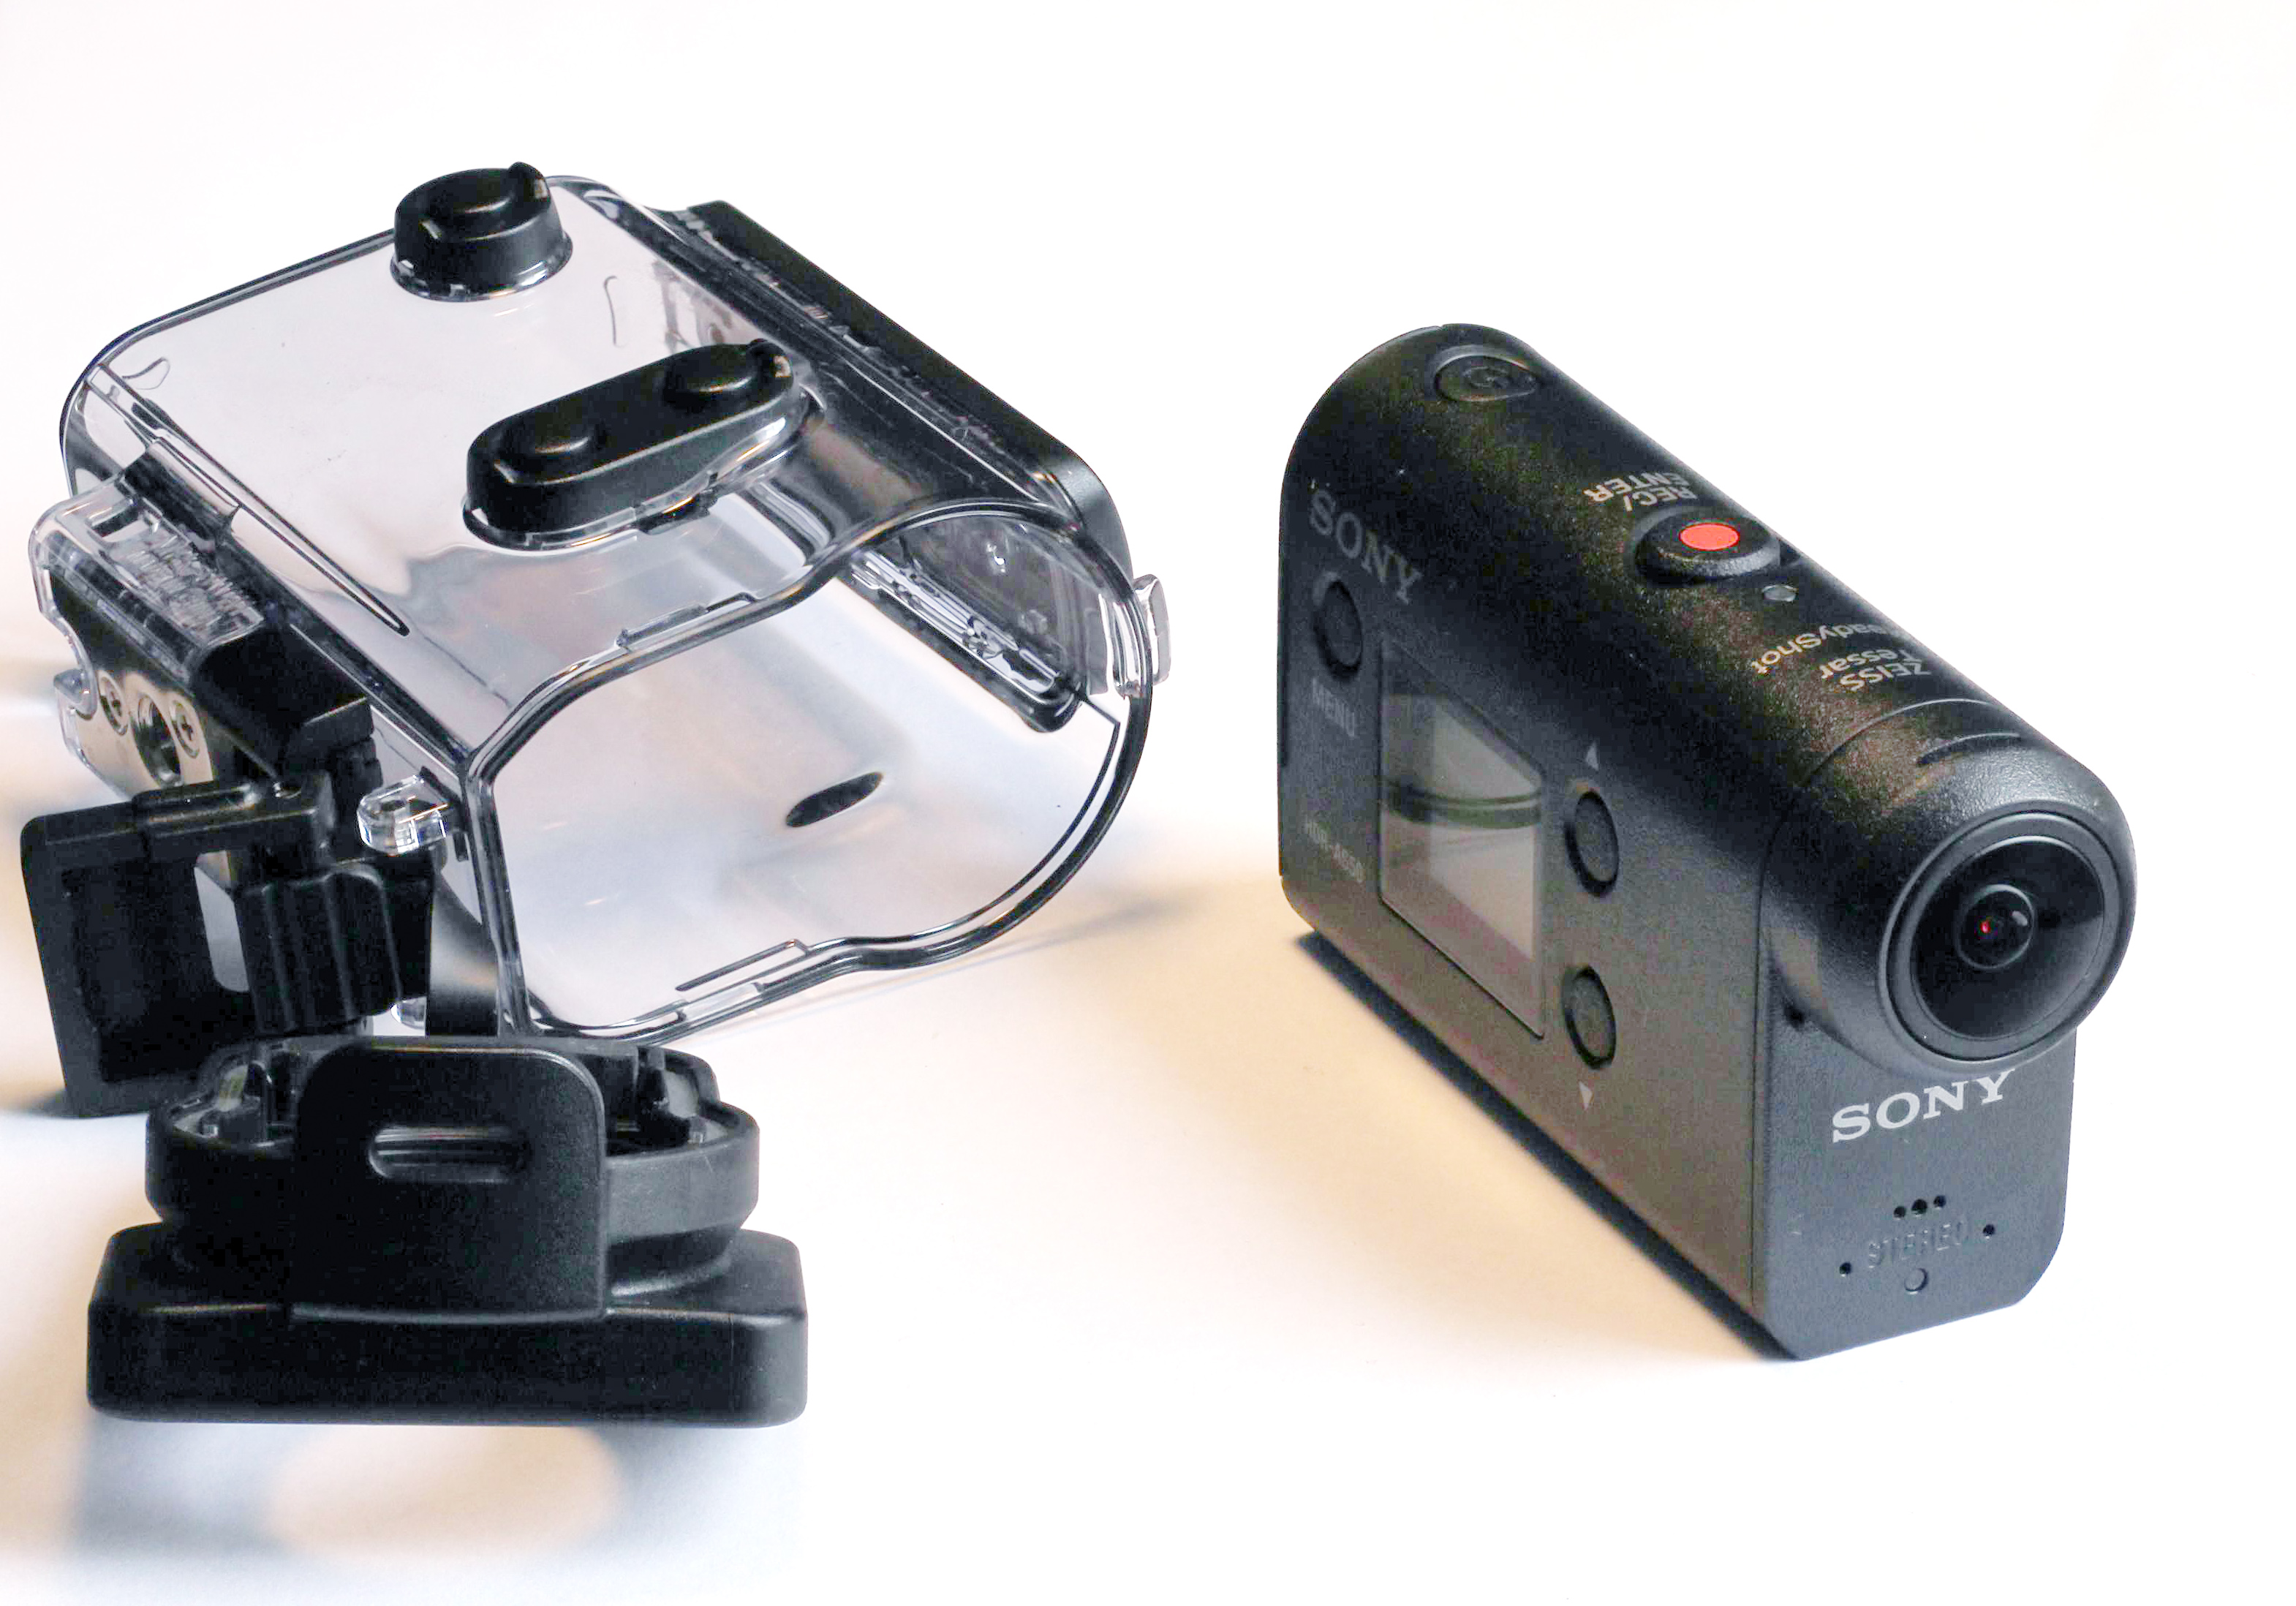 A Sony Action-camera with underwater housing